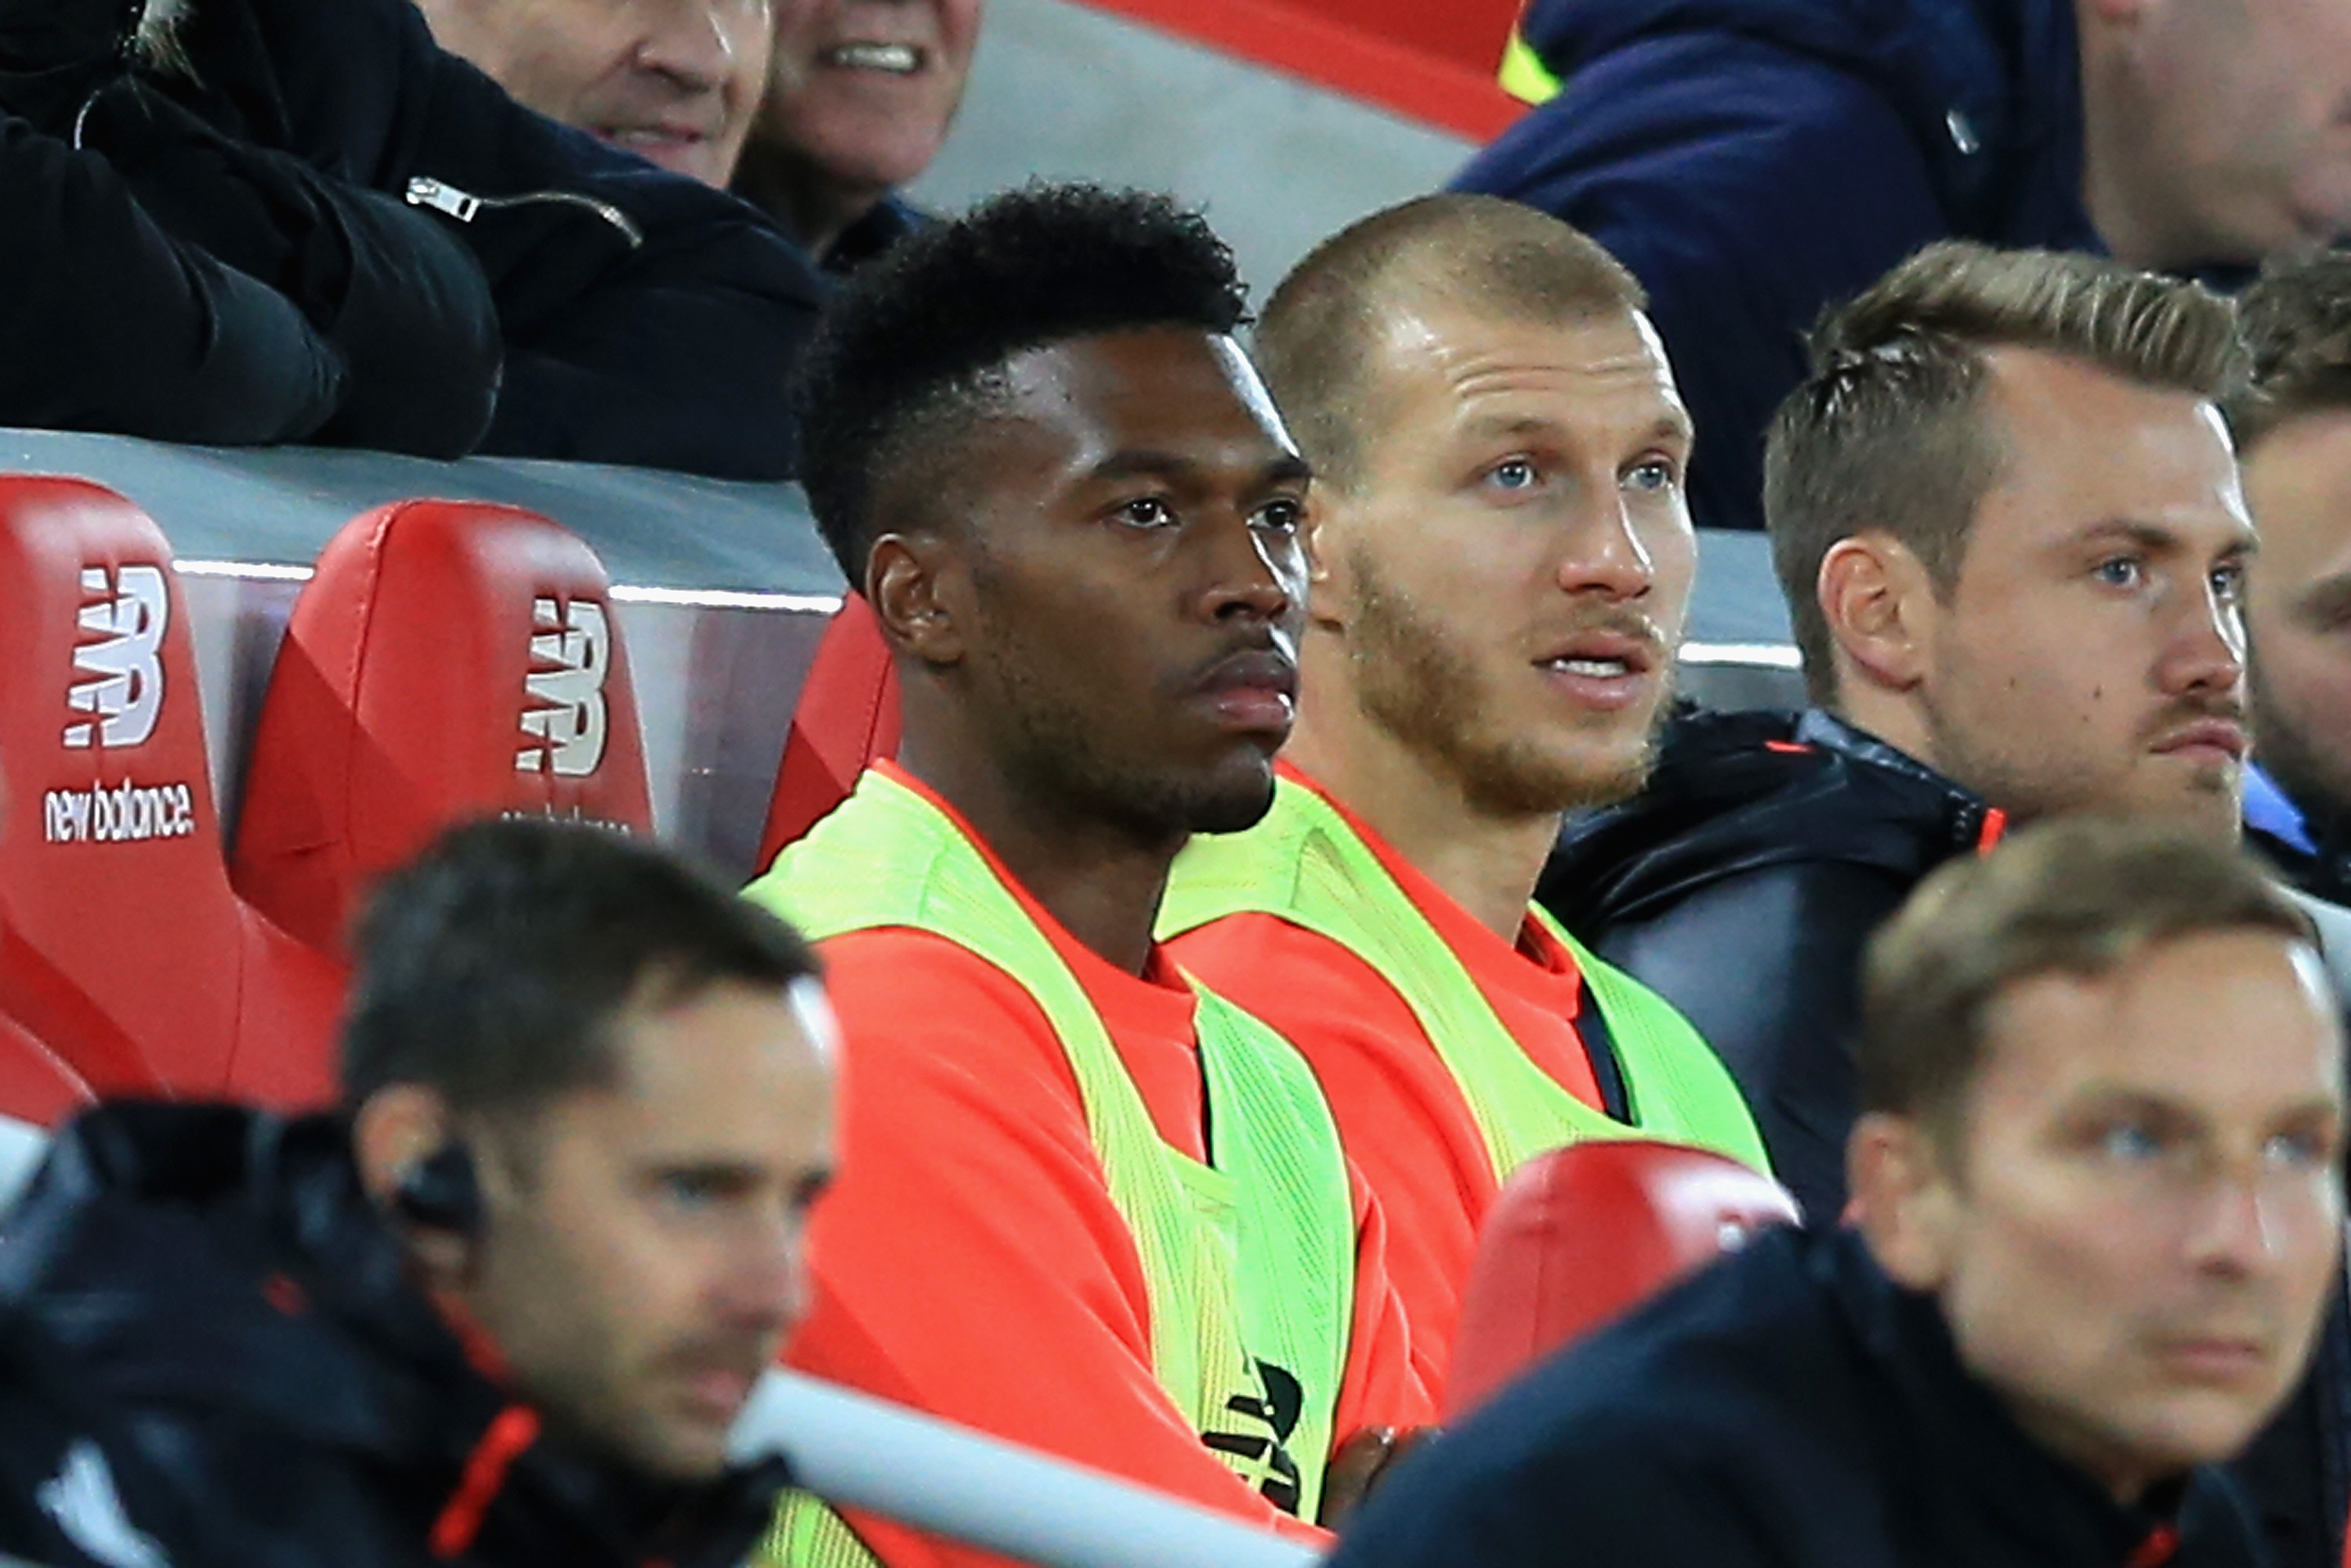 LIVERPOOL, ENGLAND - OCTOBER 22:  Substitute Daniel Sturridge of Liverpool looks on from the bench during the Premier League match between Liverpool and West Bromwich Albion at Anfield on October 22, 2016 in Liverpool, England.  (Photo by Jan Kruger/Getty Images)